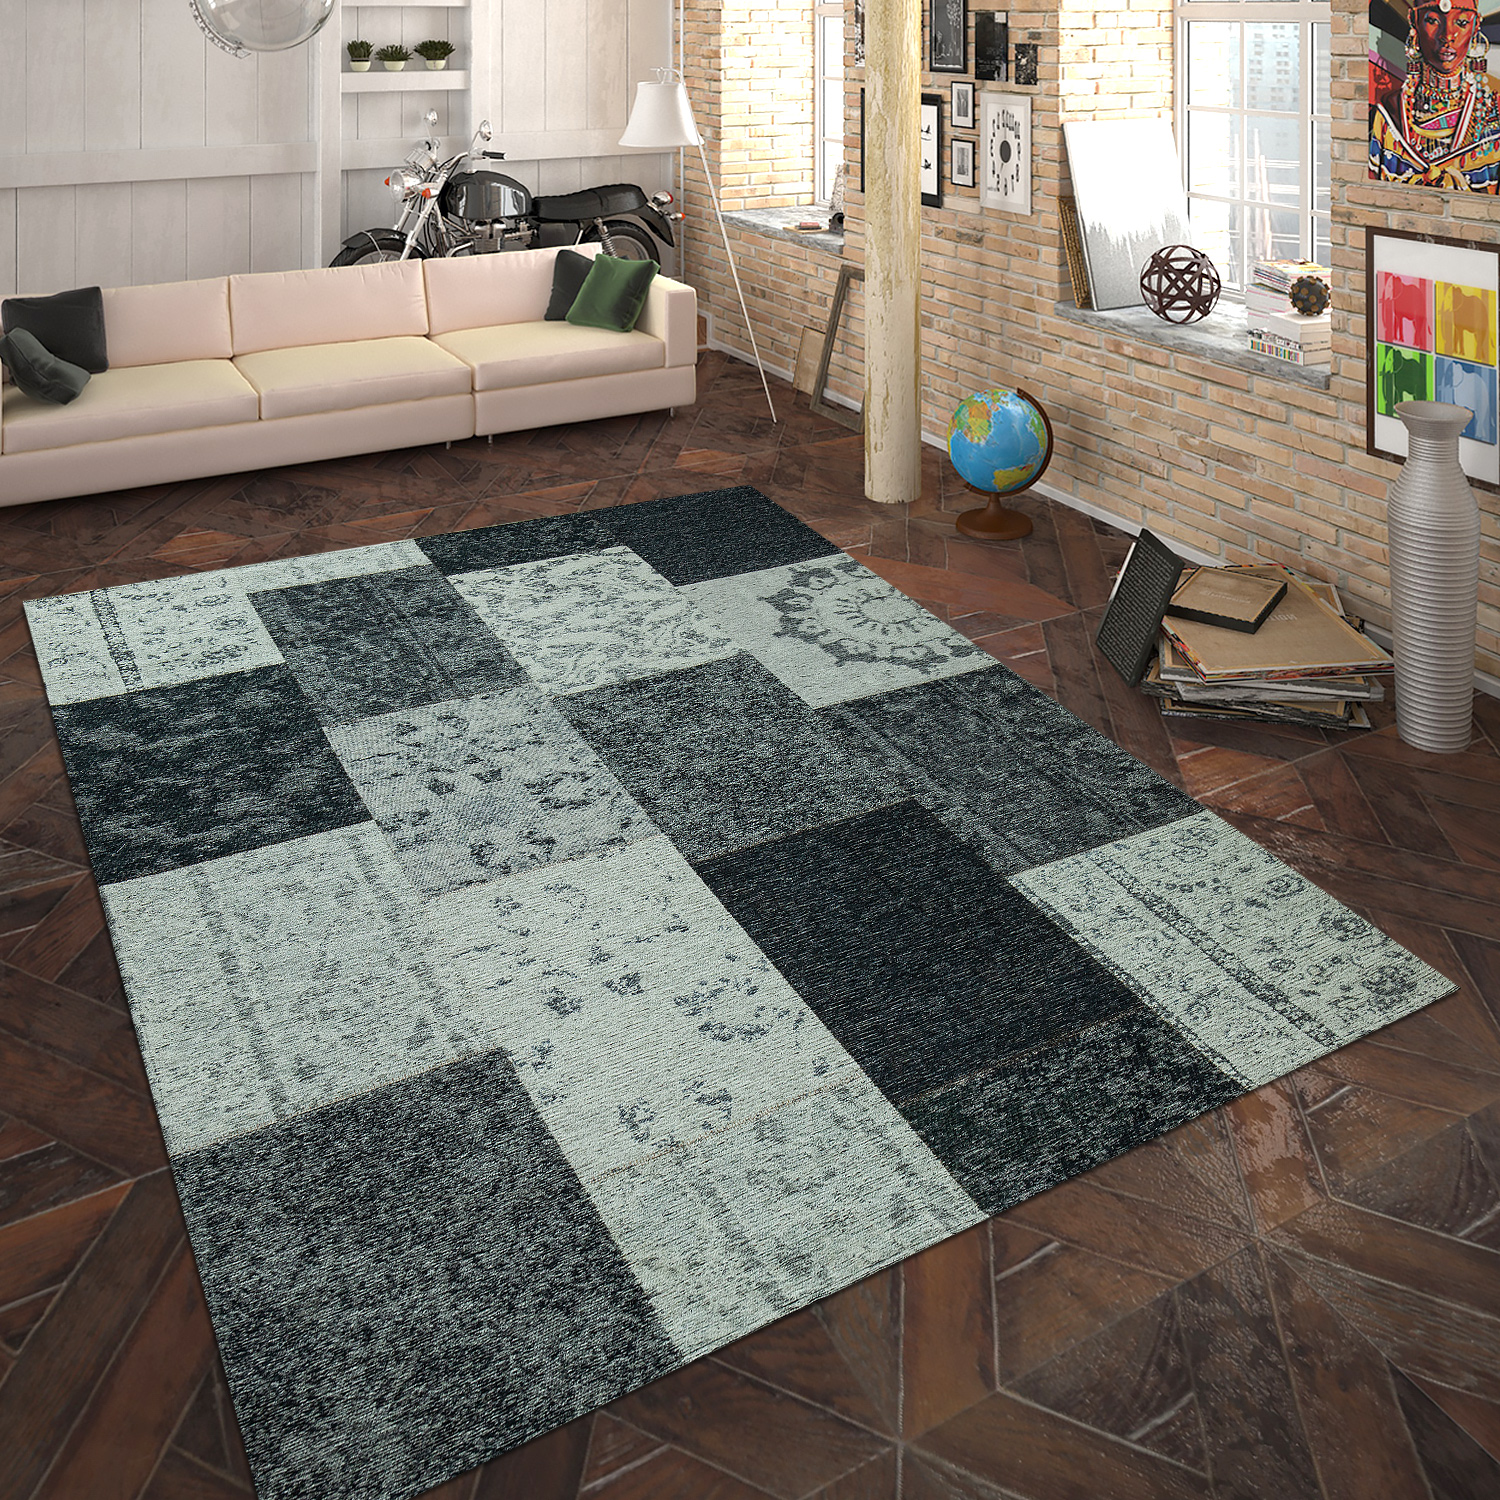 teppich flachgewebe patchwork silber grau hochflor teppiche. Black Bedroom Furniture Sets. Home Design Ideas